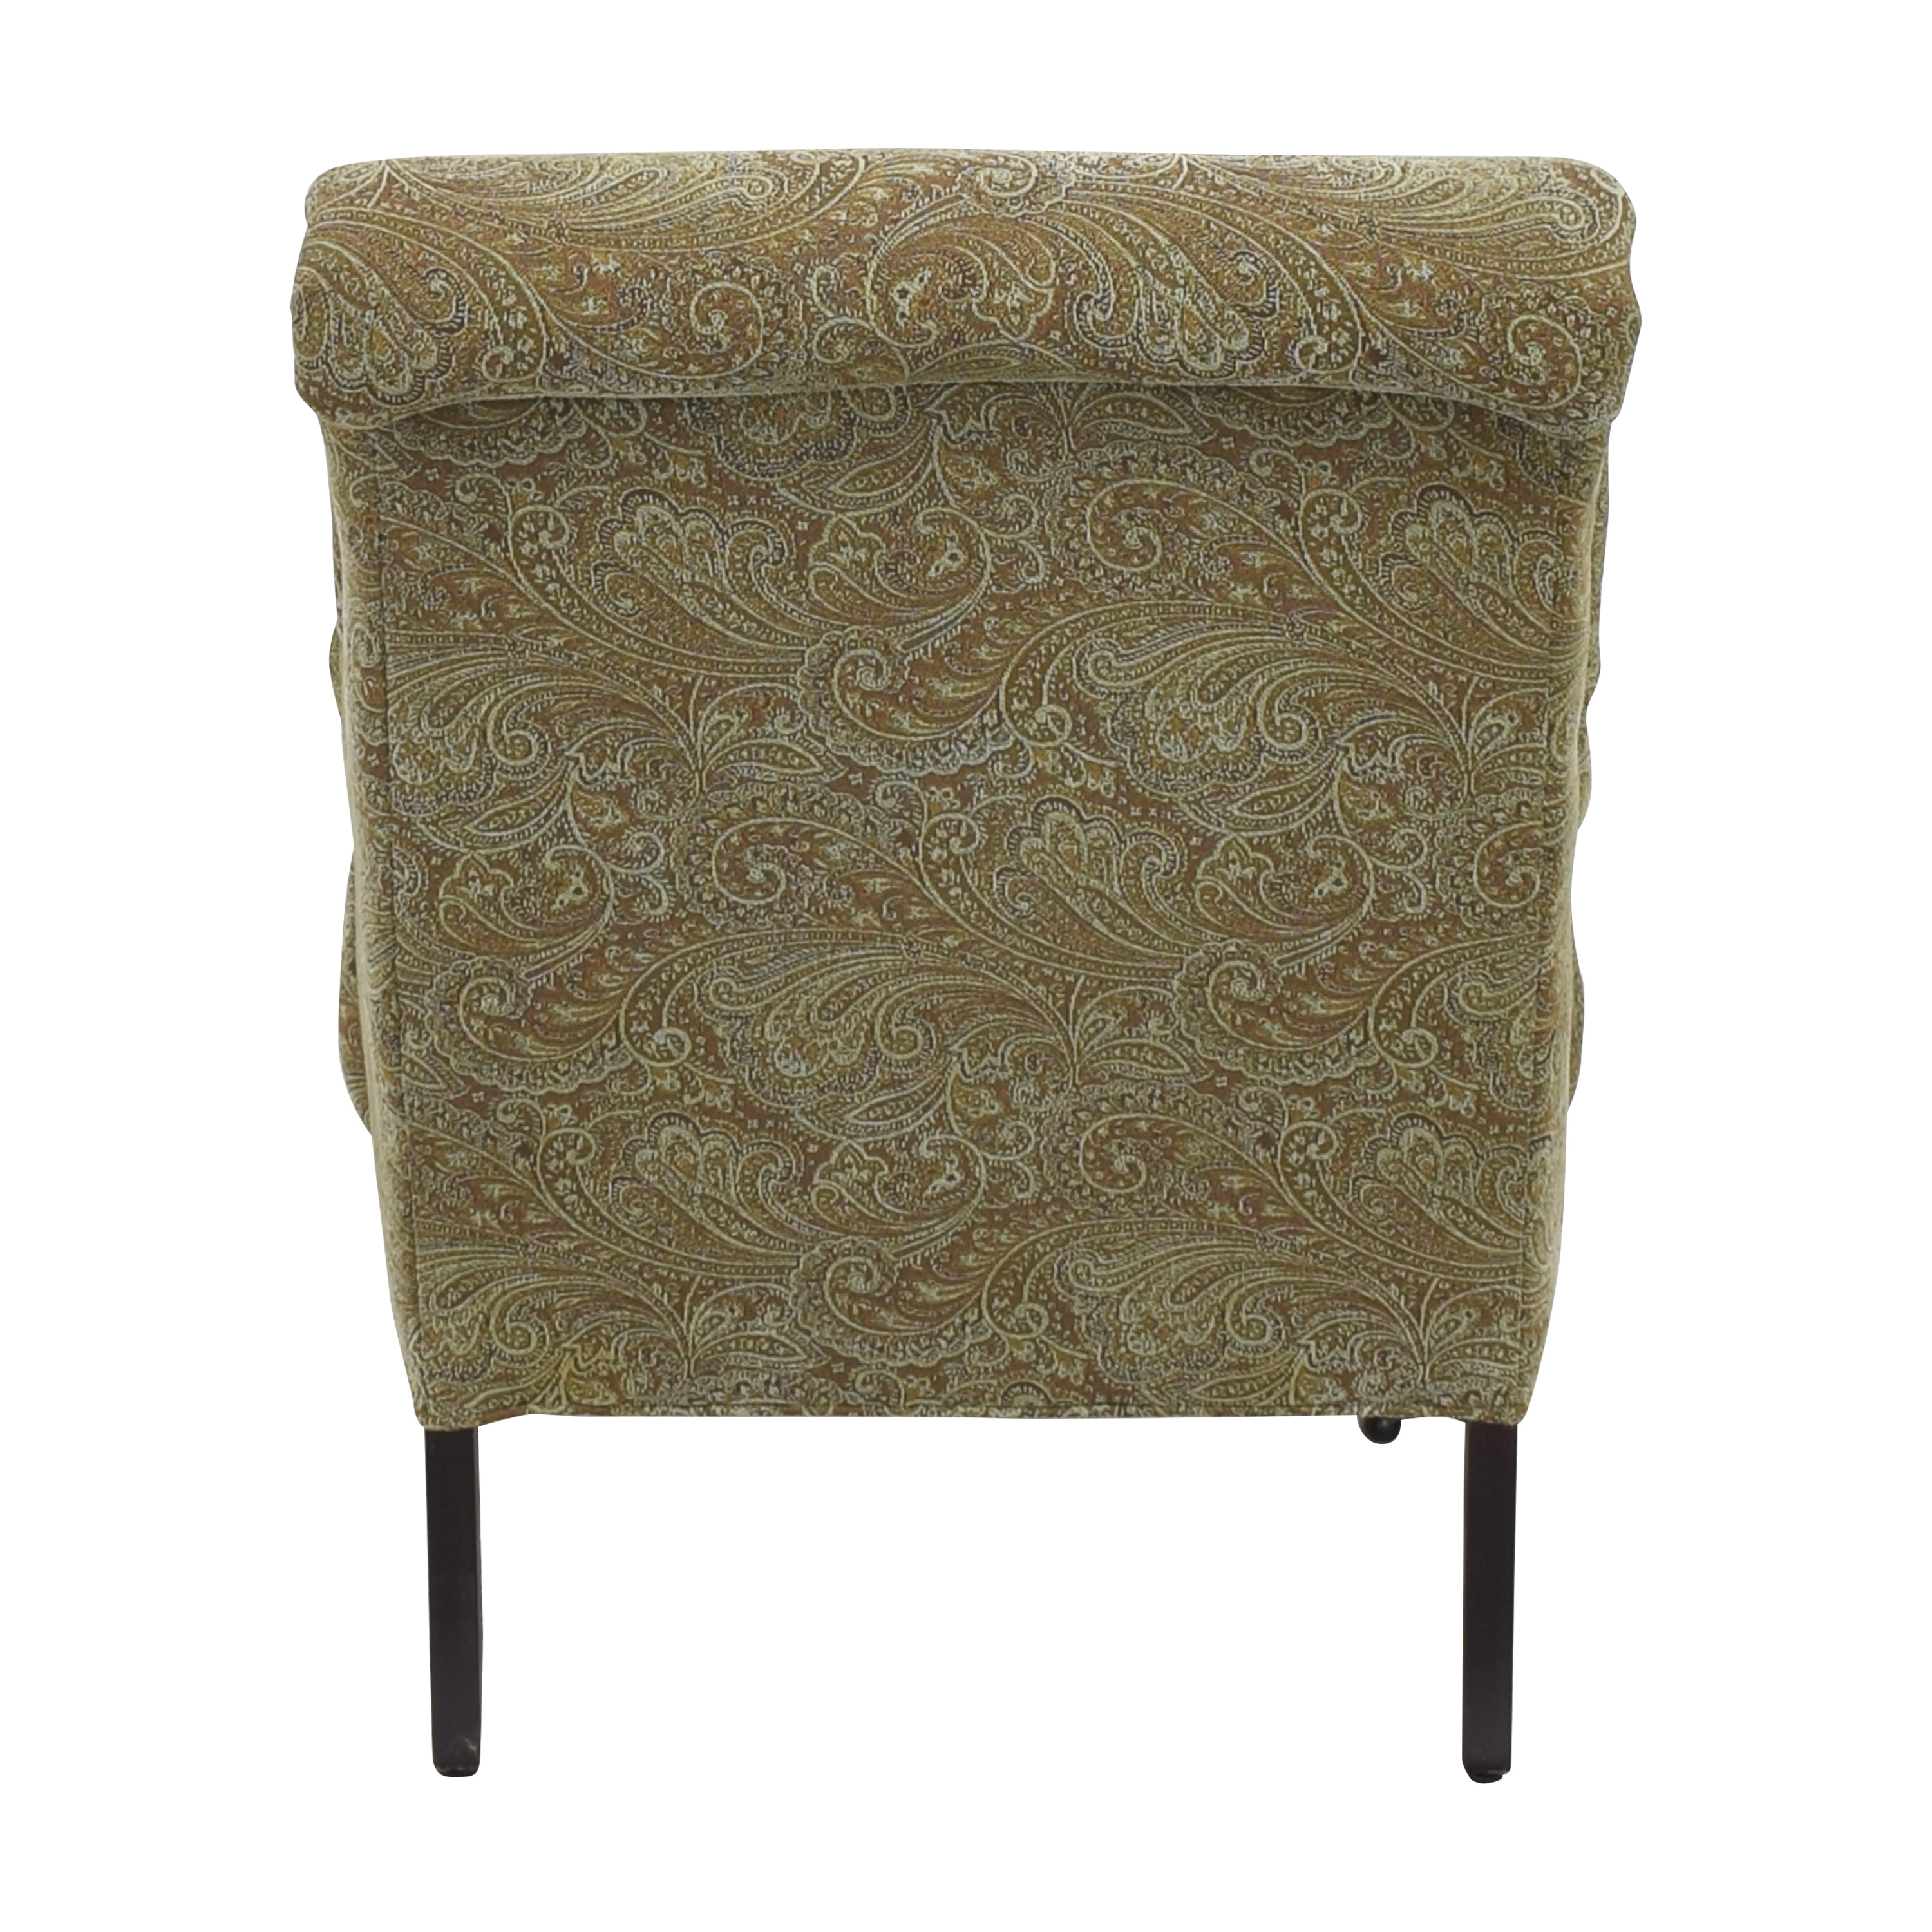 Rowe Furniture Rowe Furniture Paisley Accent Chair dimensions